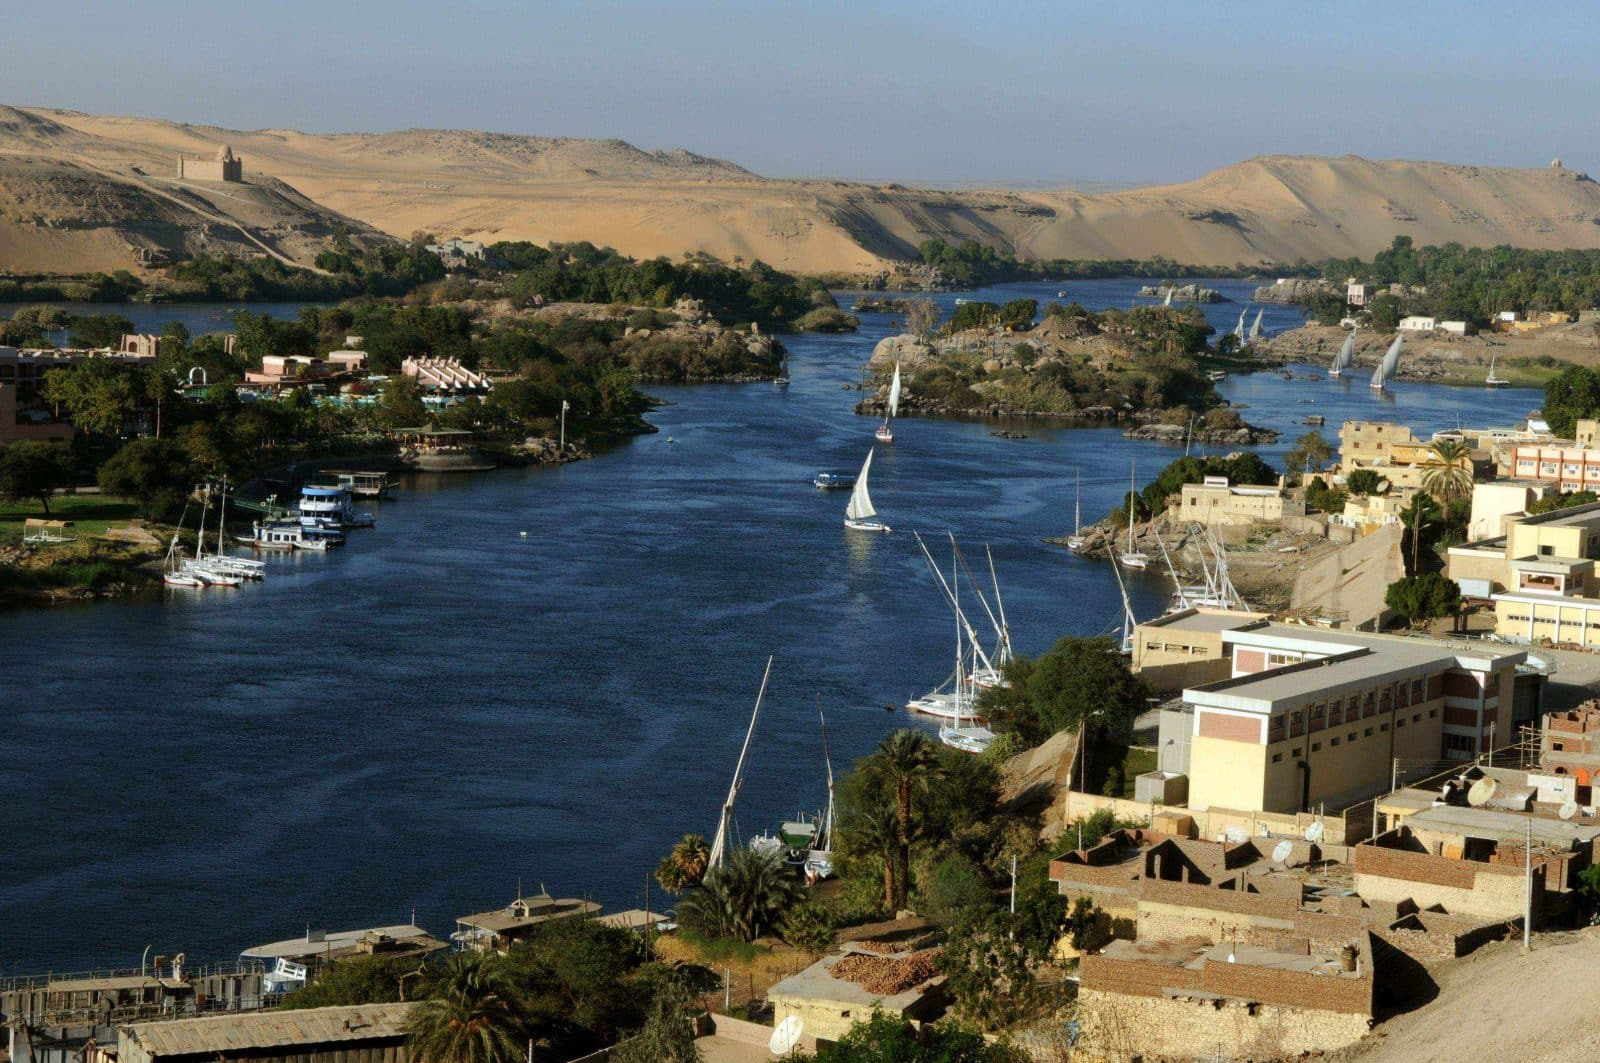 Aswan Egypt - Aswan Facts - Trips In Egypt